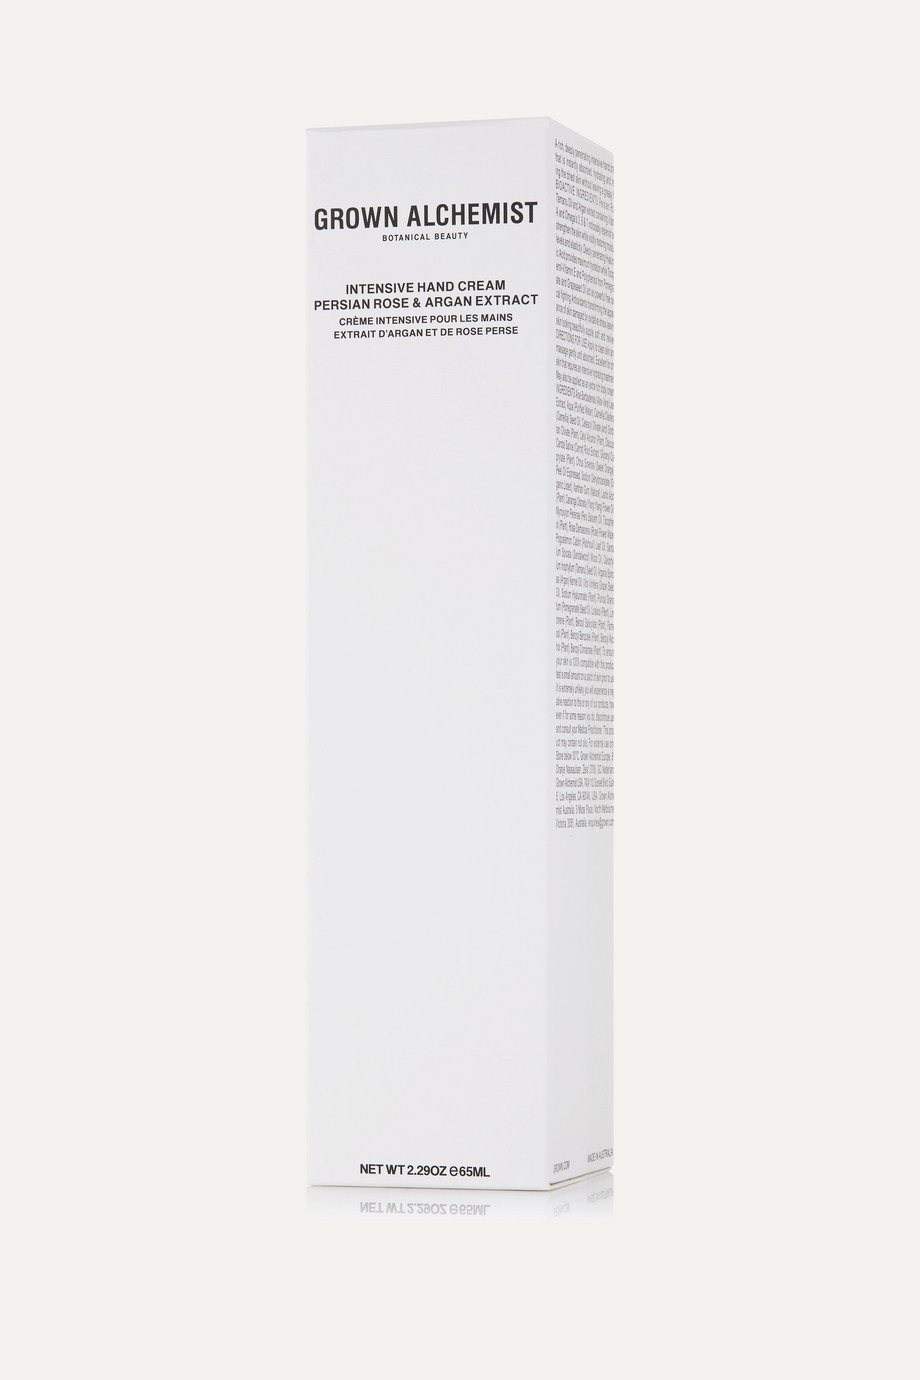 GROWN ALCHEMIST Intensive Hand Cream, 65ml